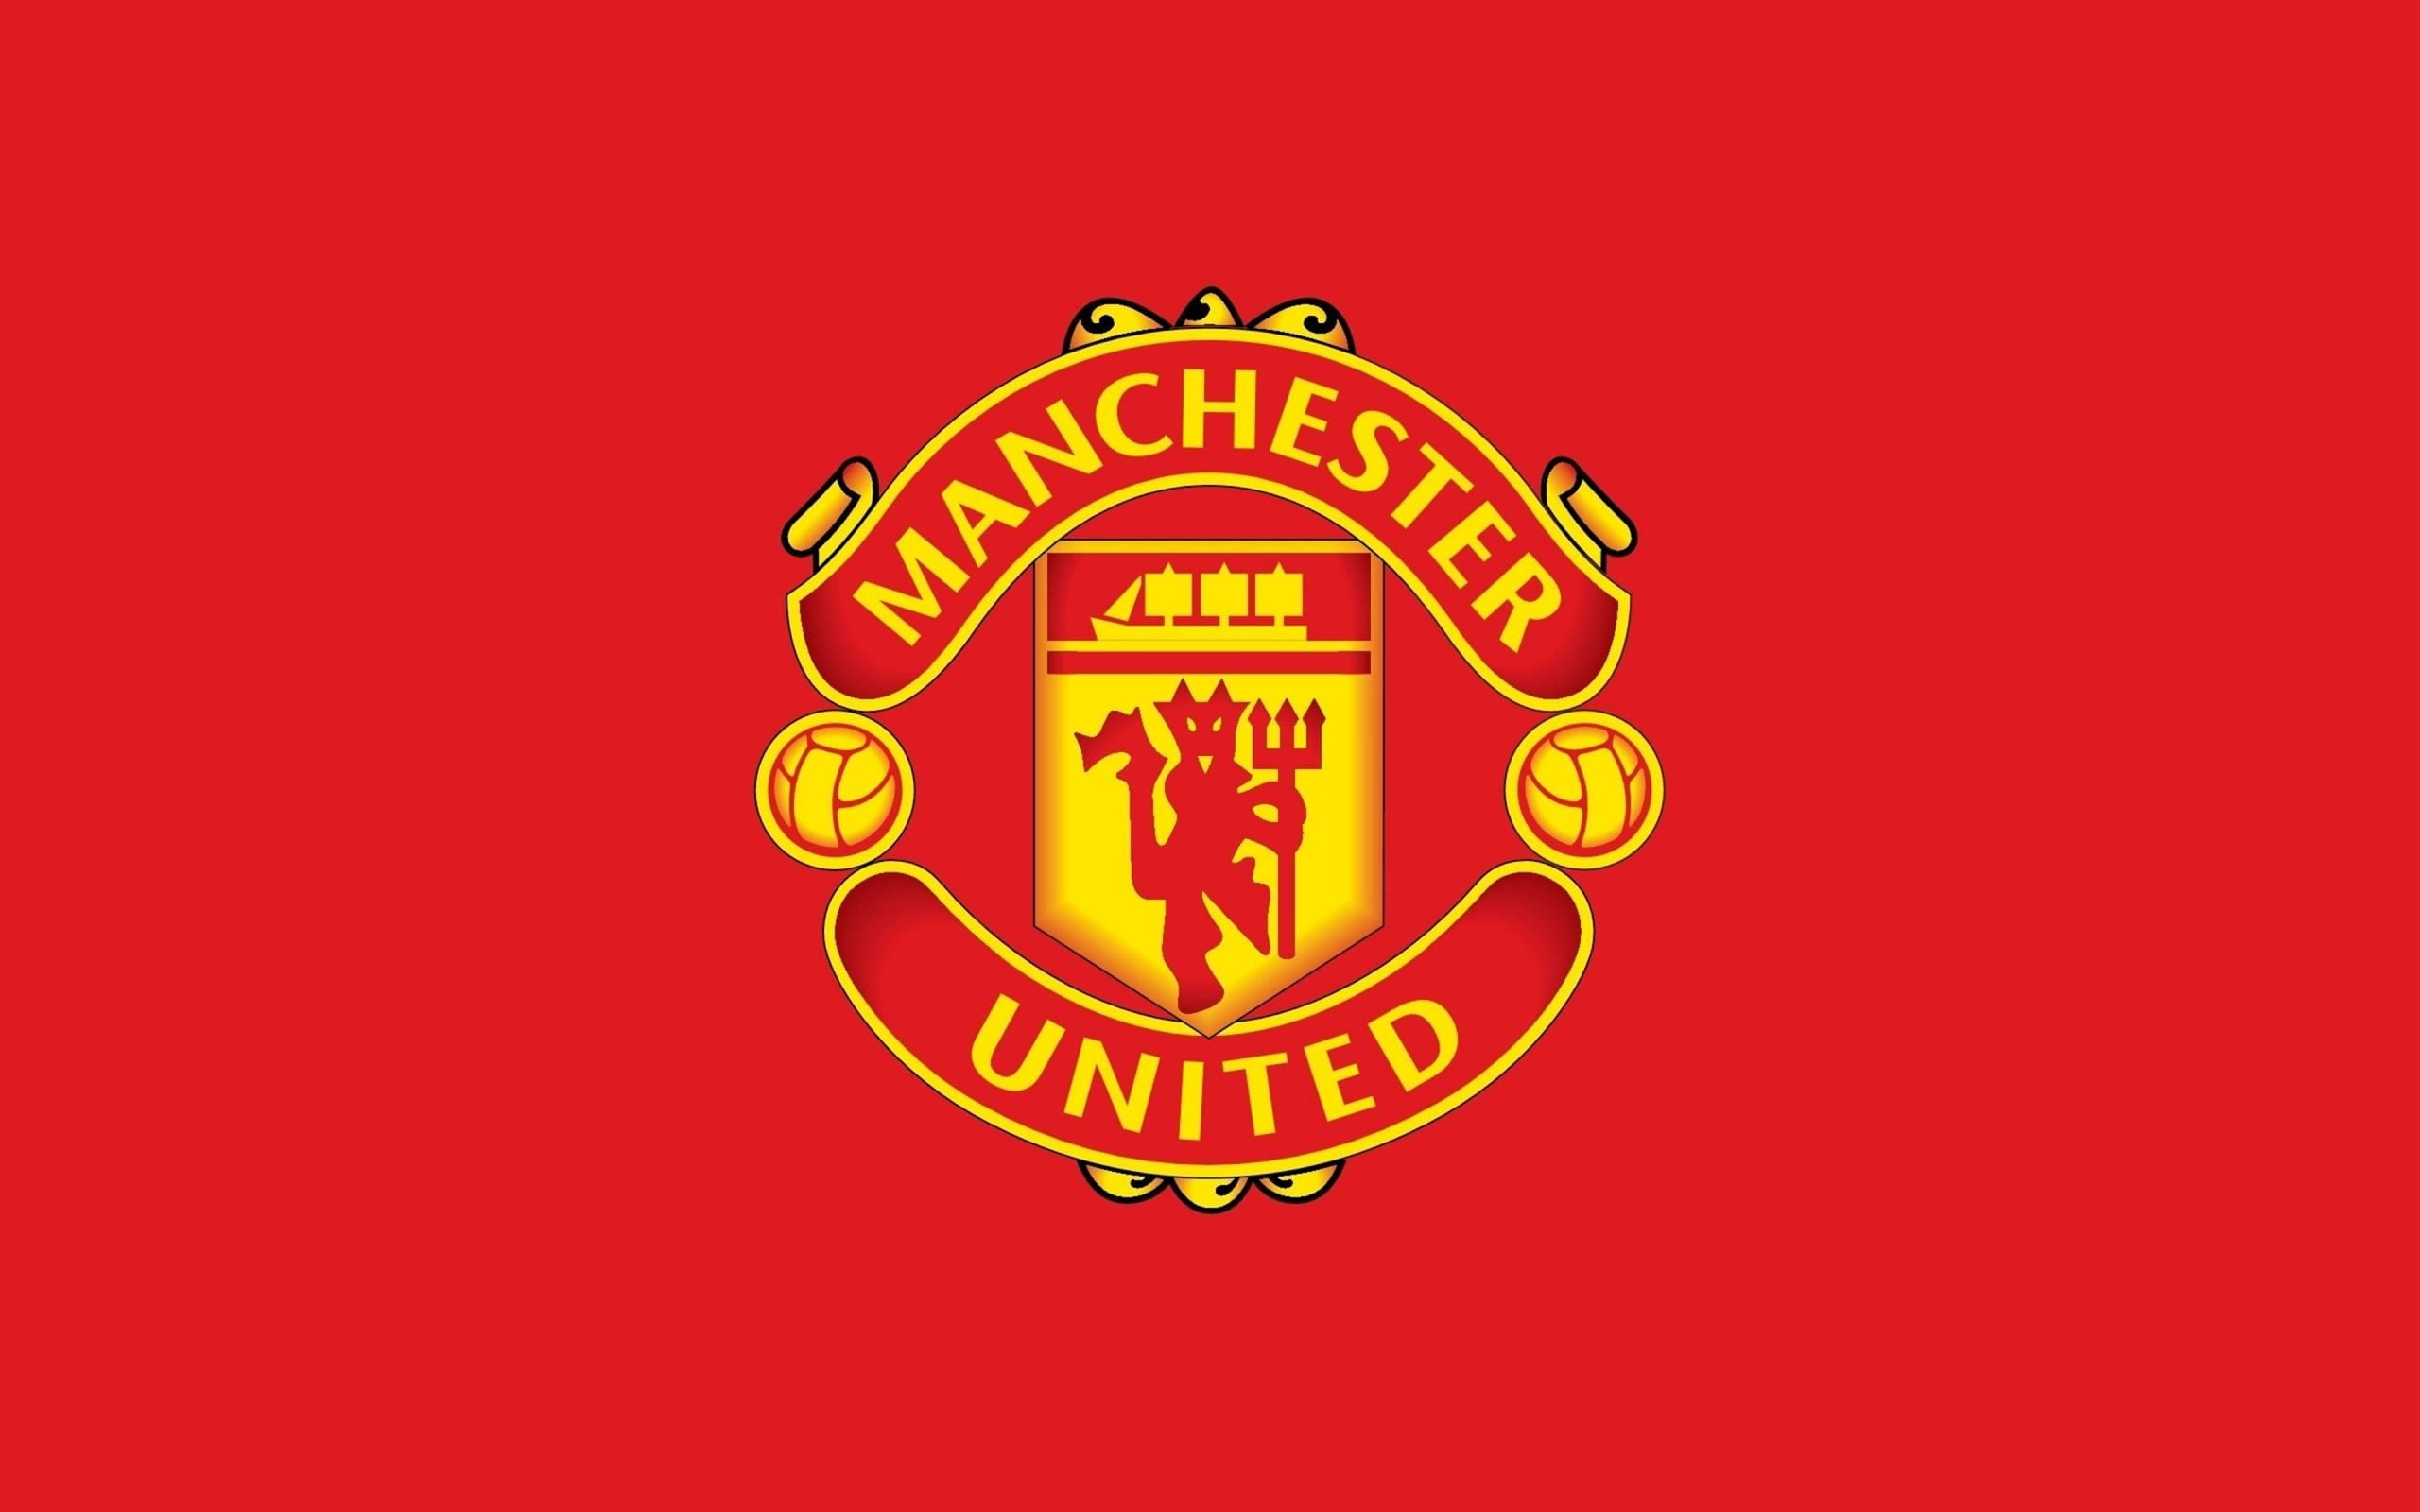 Manchester United HD Wallpapers Download - The Football Lovers